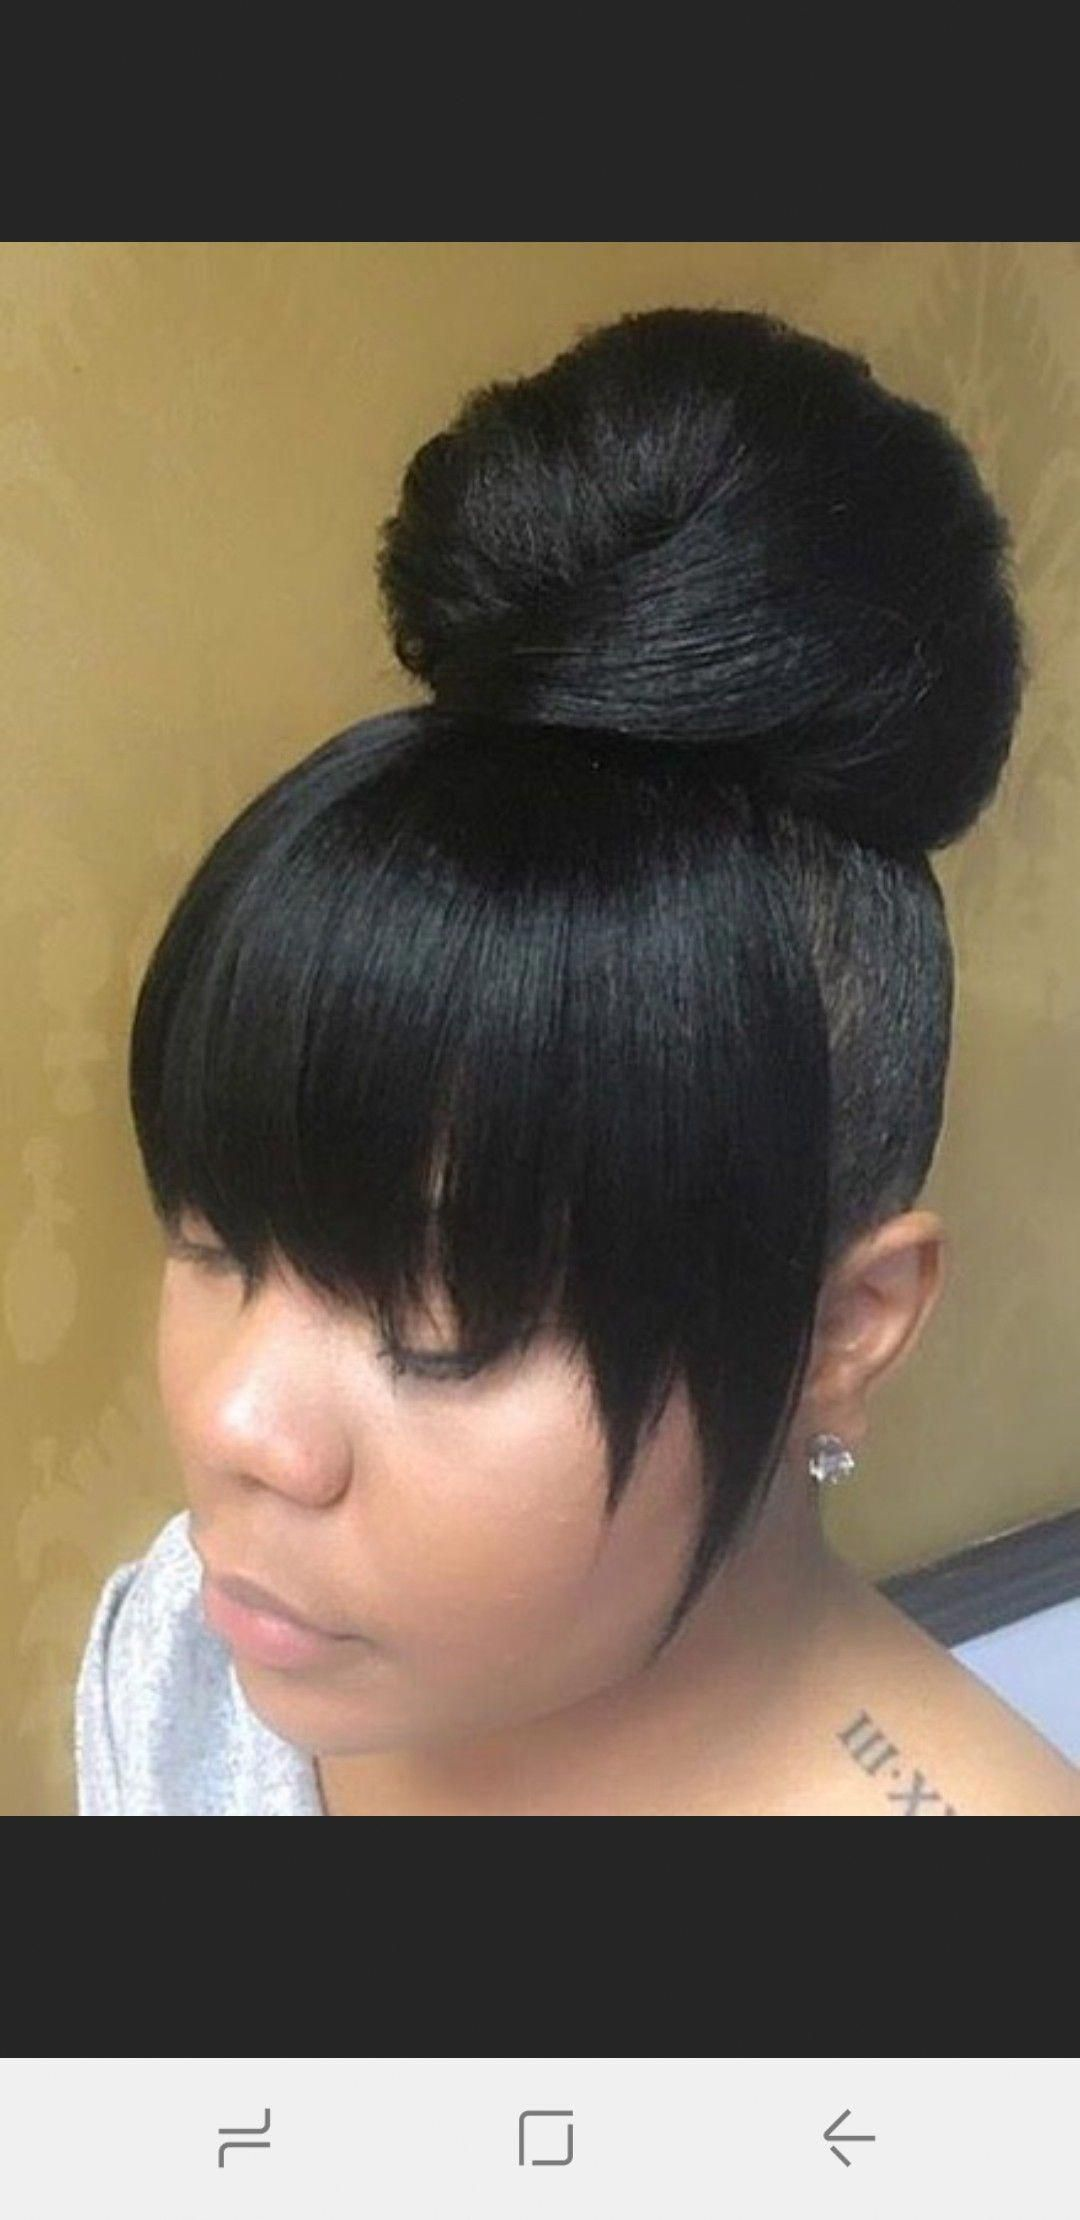 Black Hairstyles With Weave Blackhairstyleswithweave High Ponytail Hairstyles Black Hairstyles With Weave Natural Hair Styles